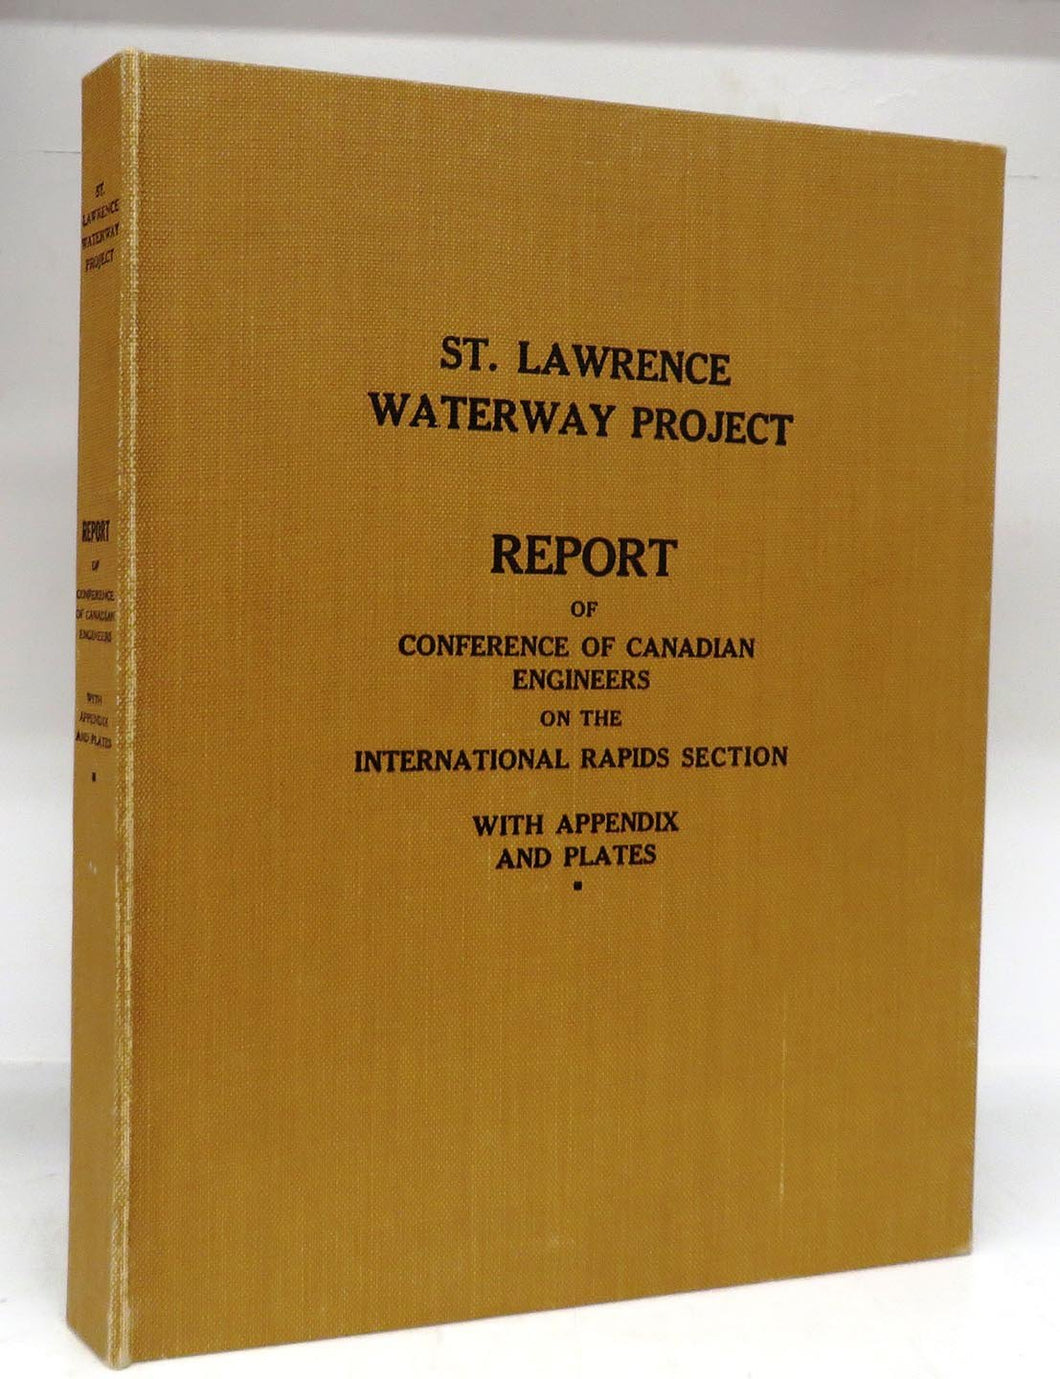 St. Lawrence Waterway Project: Report of Conference of Canadian Engineers on the International Rapids Section of the St. Lawrence River. With Appendix and Plates. Dated December 30, 1929